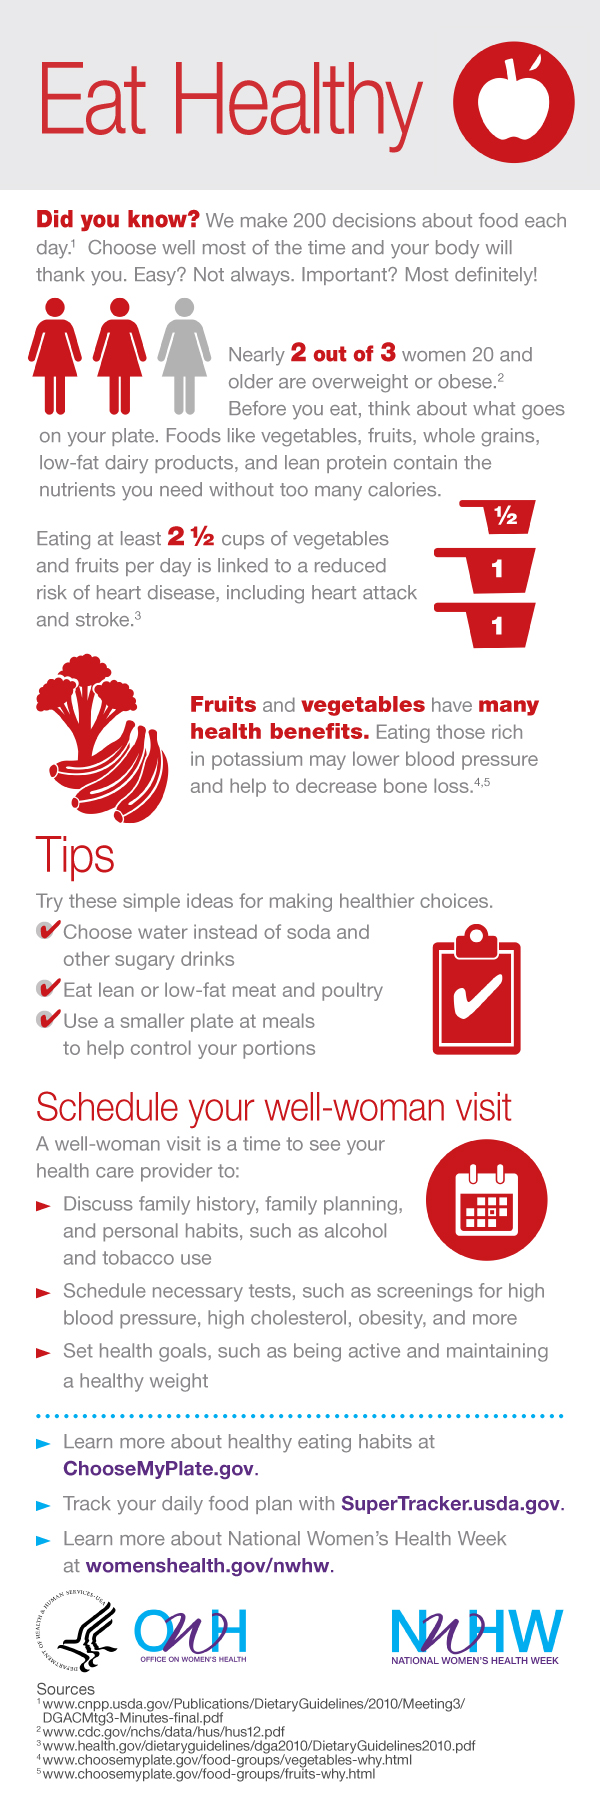 National Women's Health Week 2014 - Eat Healthy infographic